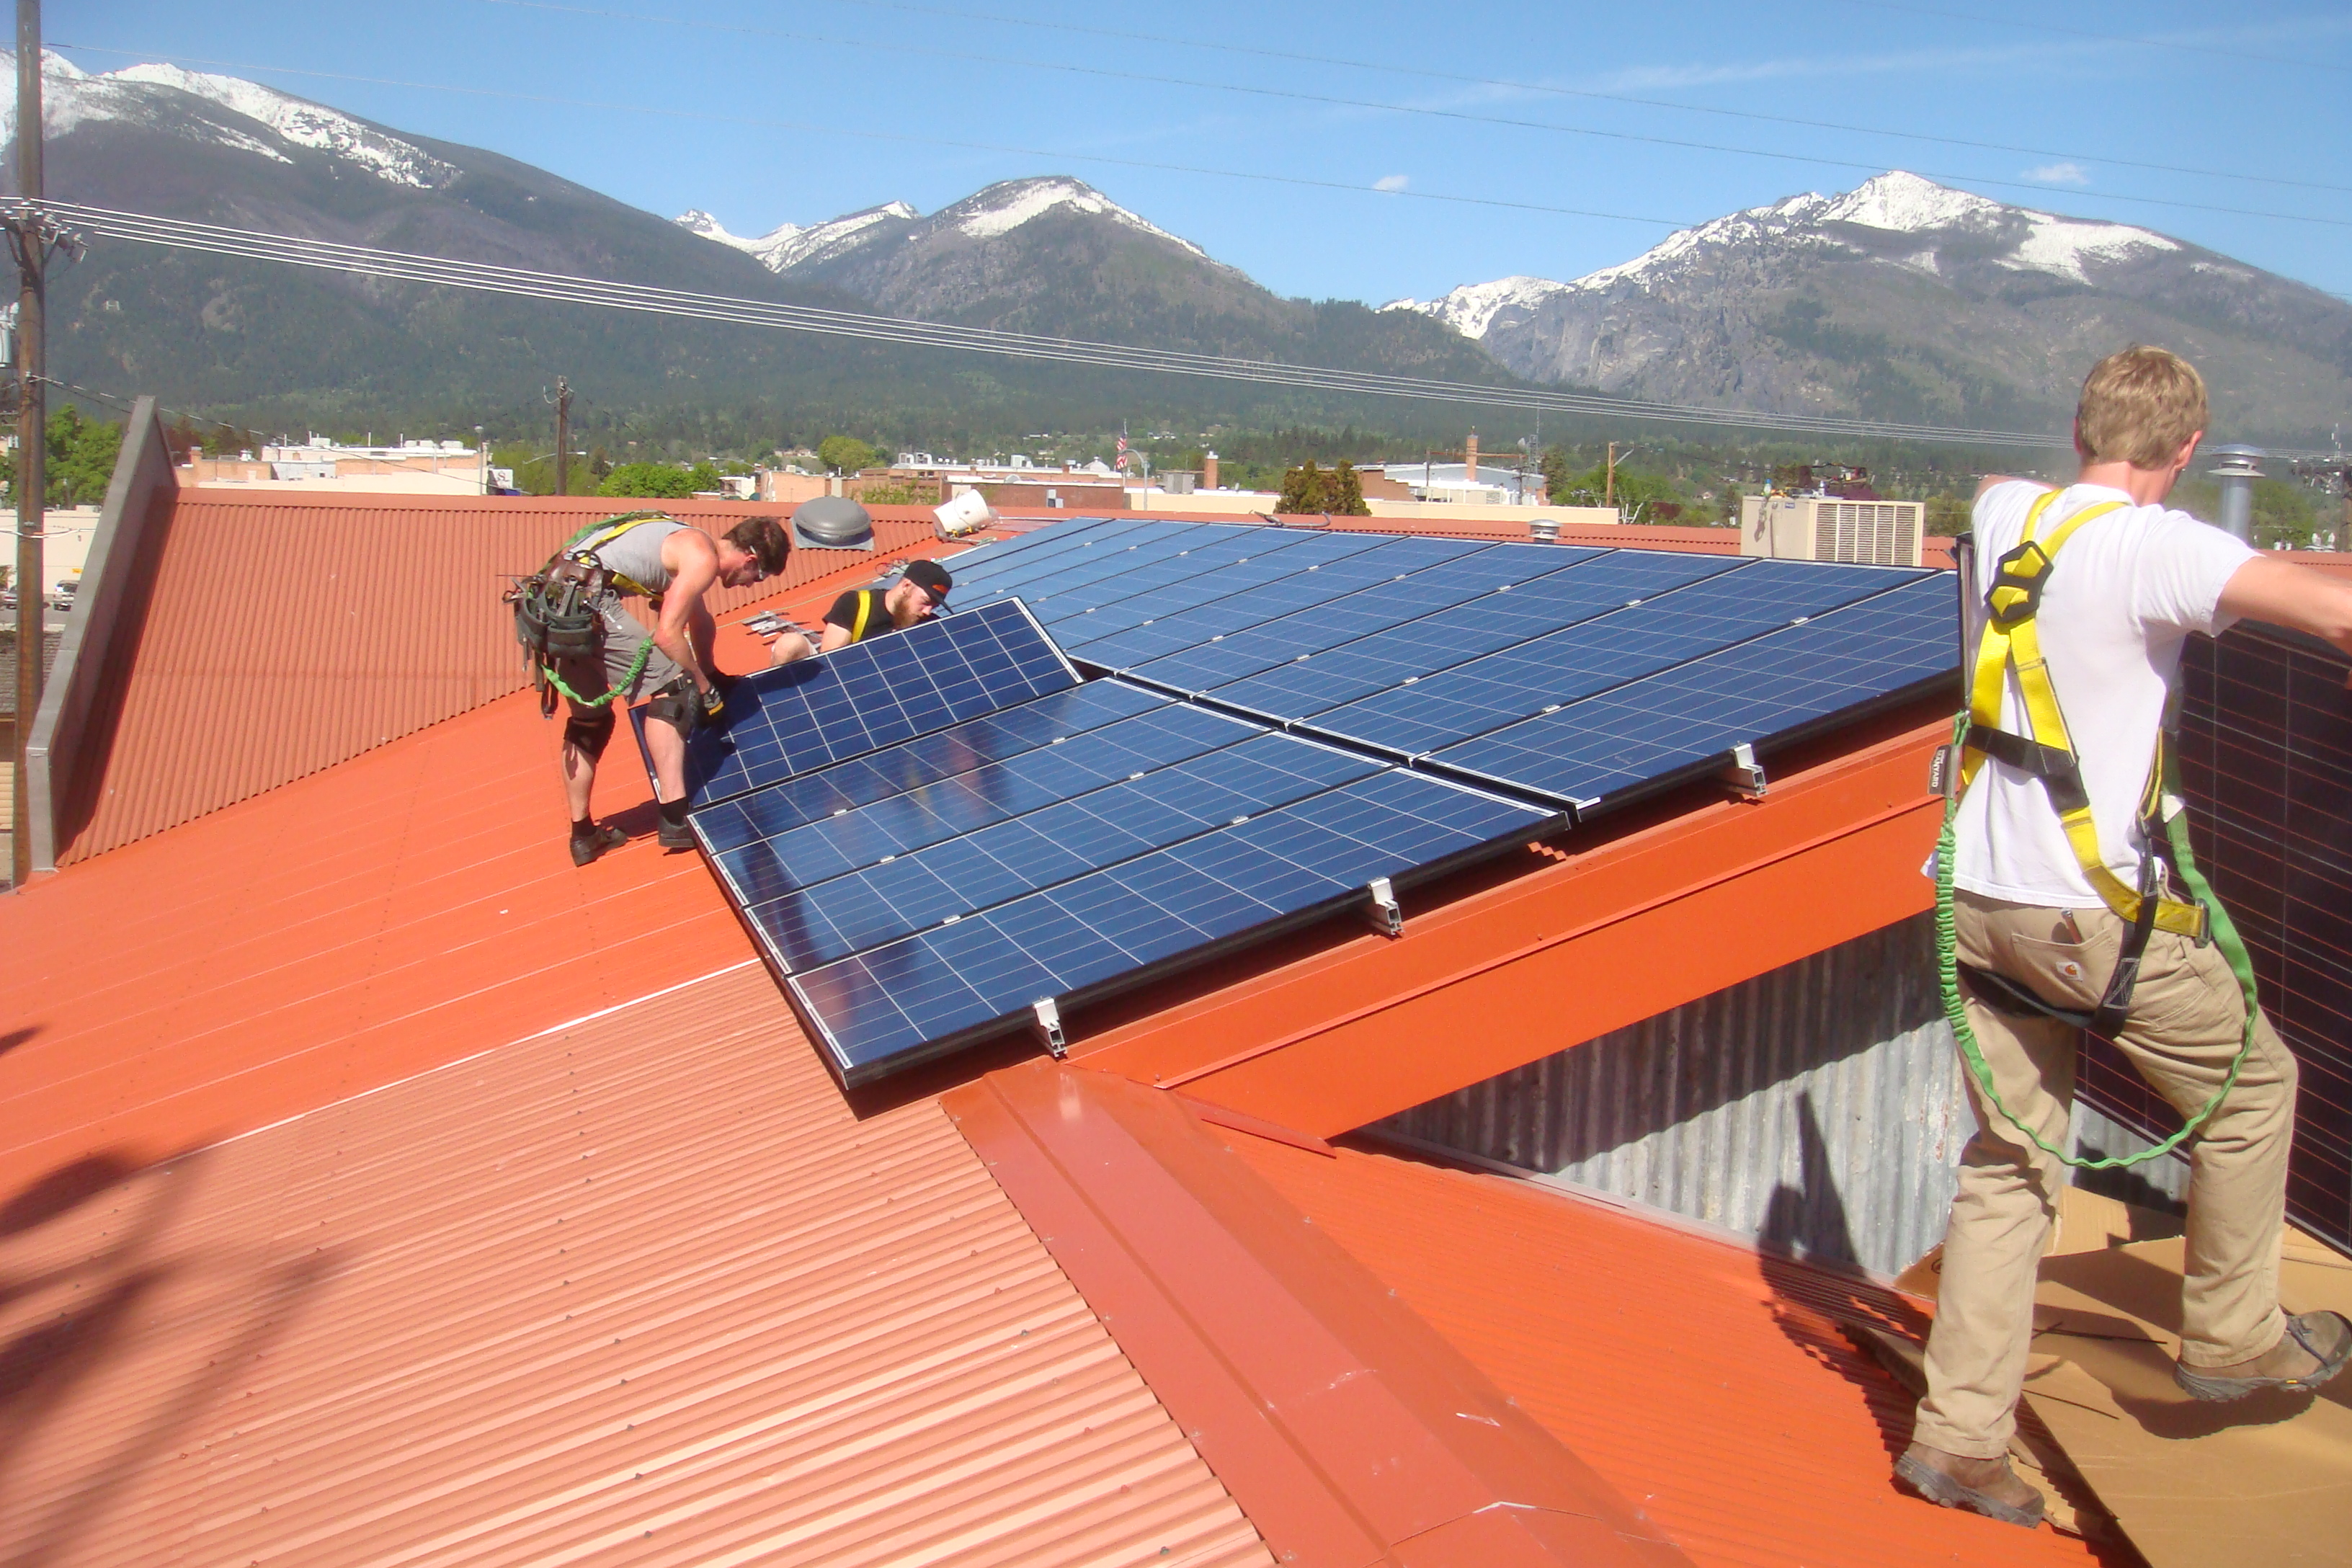 Sbs Solar Of Missoula Montana Electric Panels By Electronic Projects Electrical Lamar Valley Yellowstone National Park Bitterroot Brewery Rooftop Installation Hamilton Mt Residential Systems